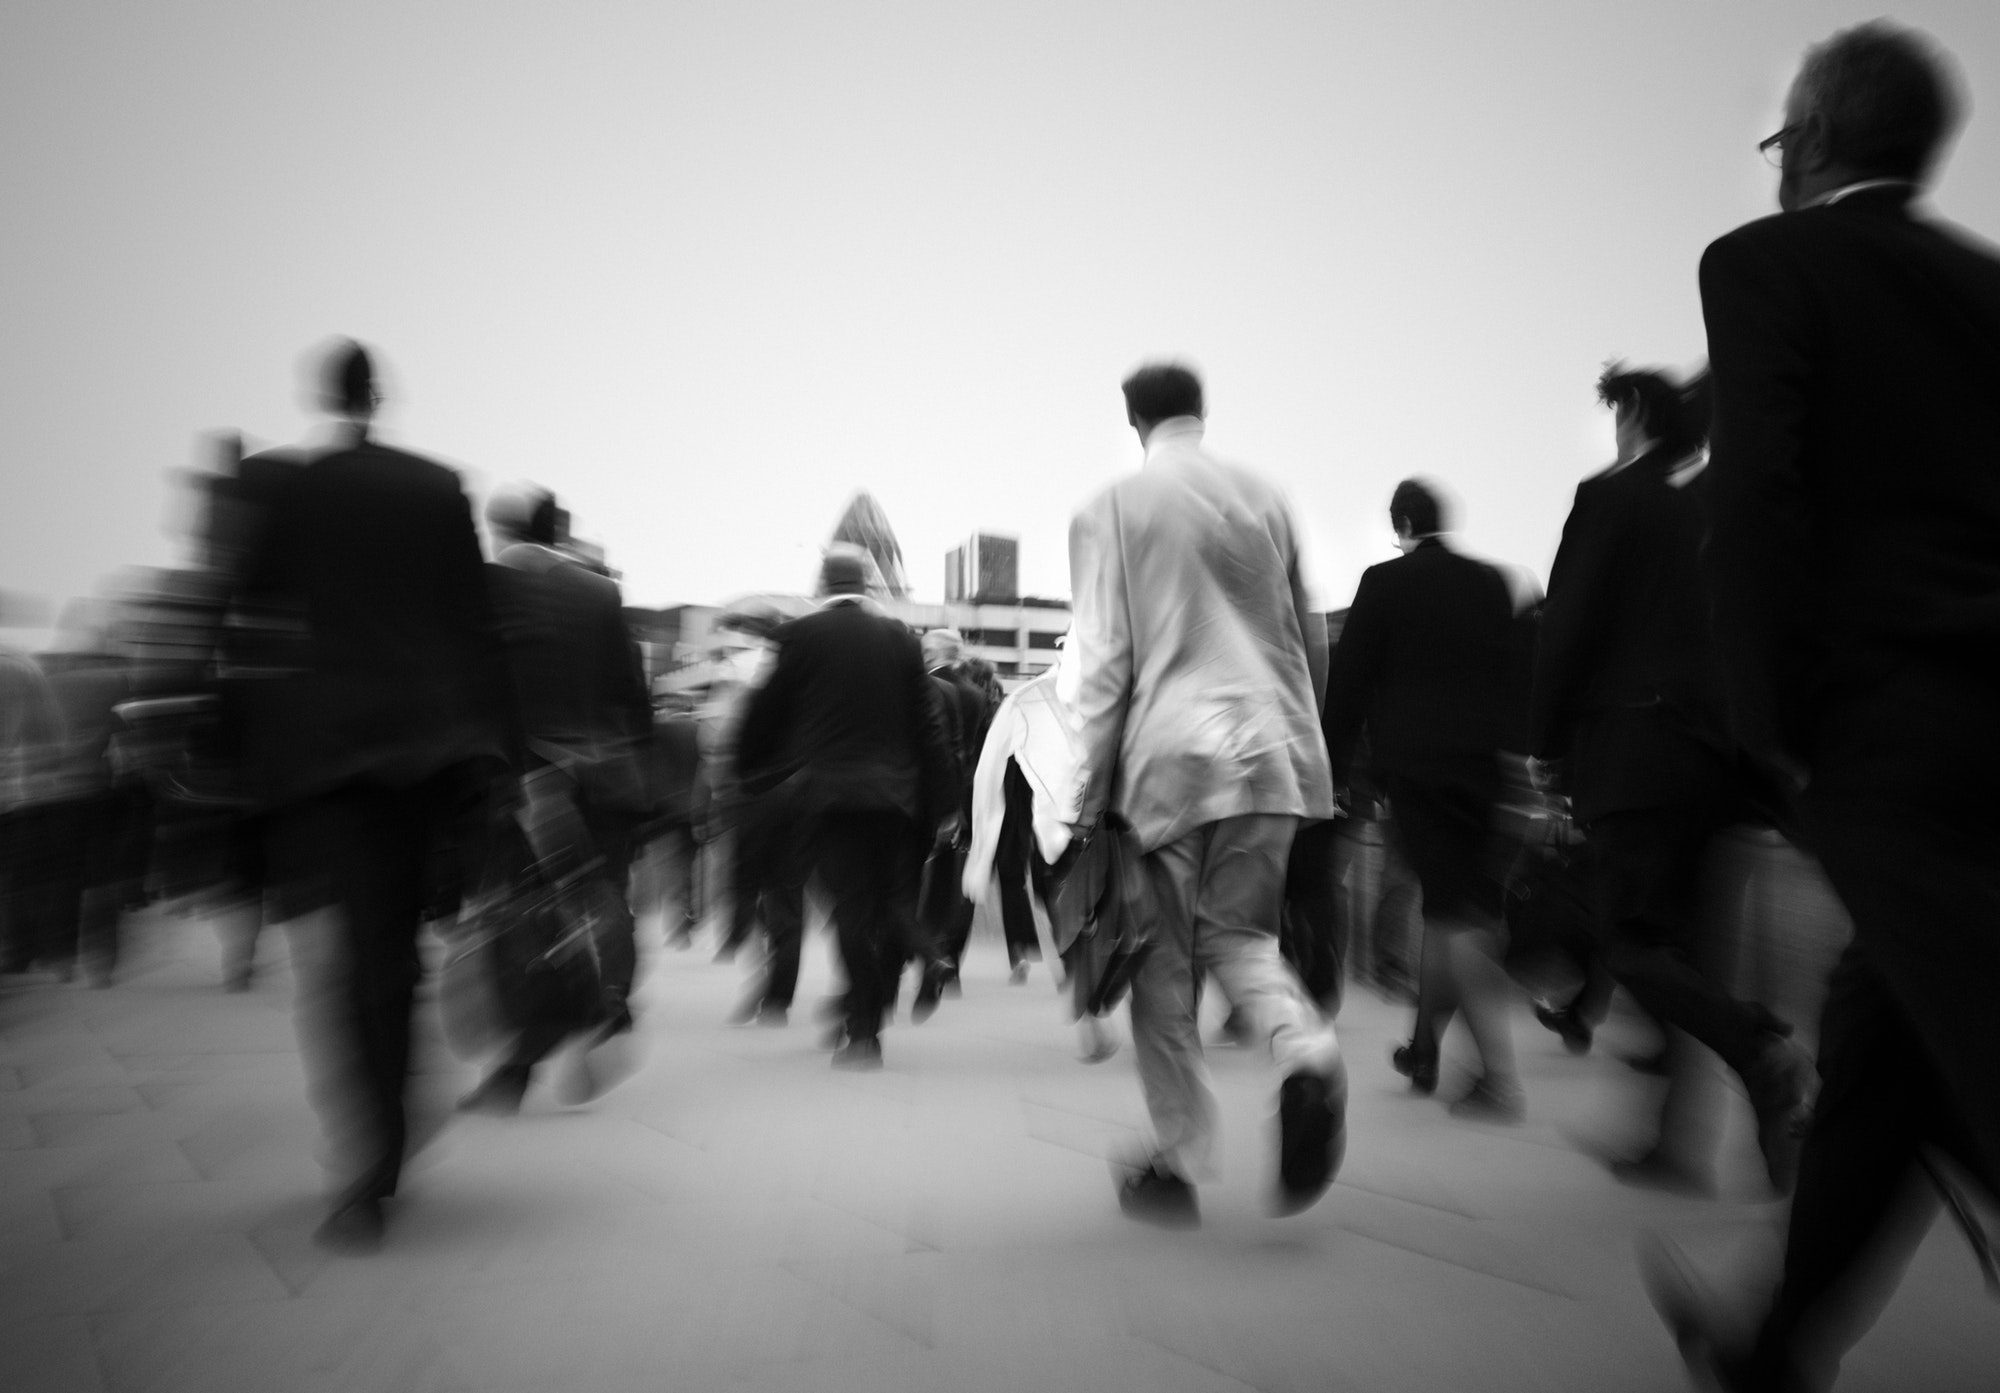 Crowd Of Businessmen On Their Way To Work